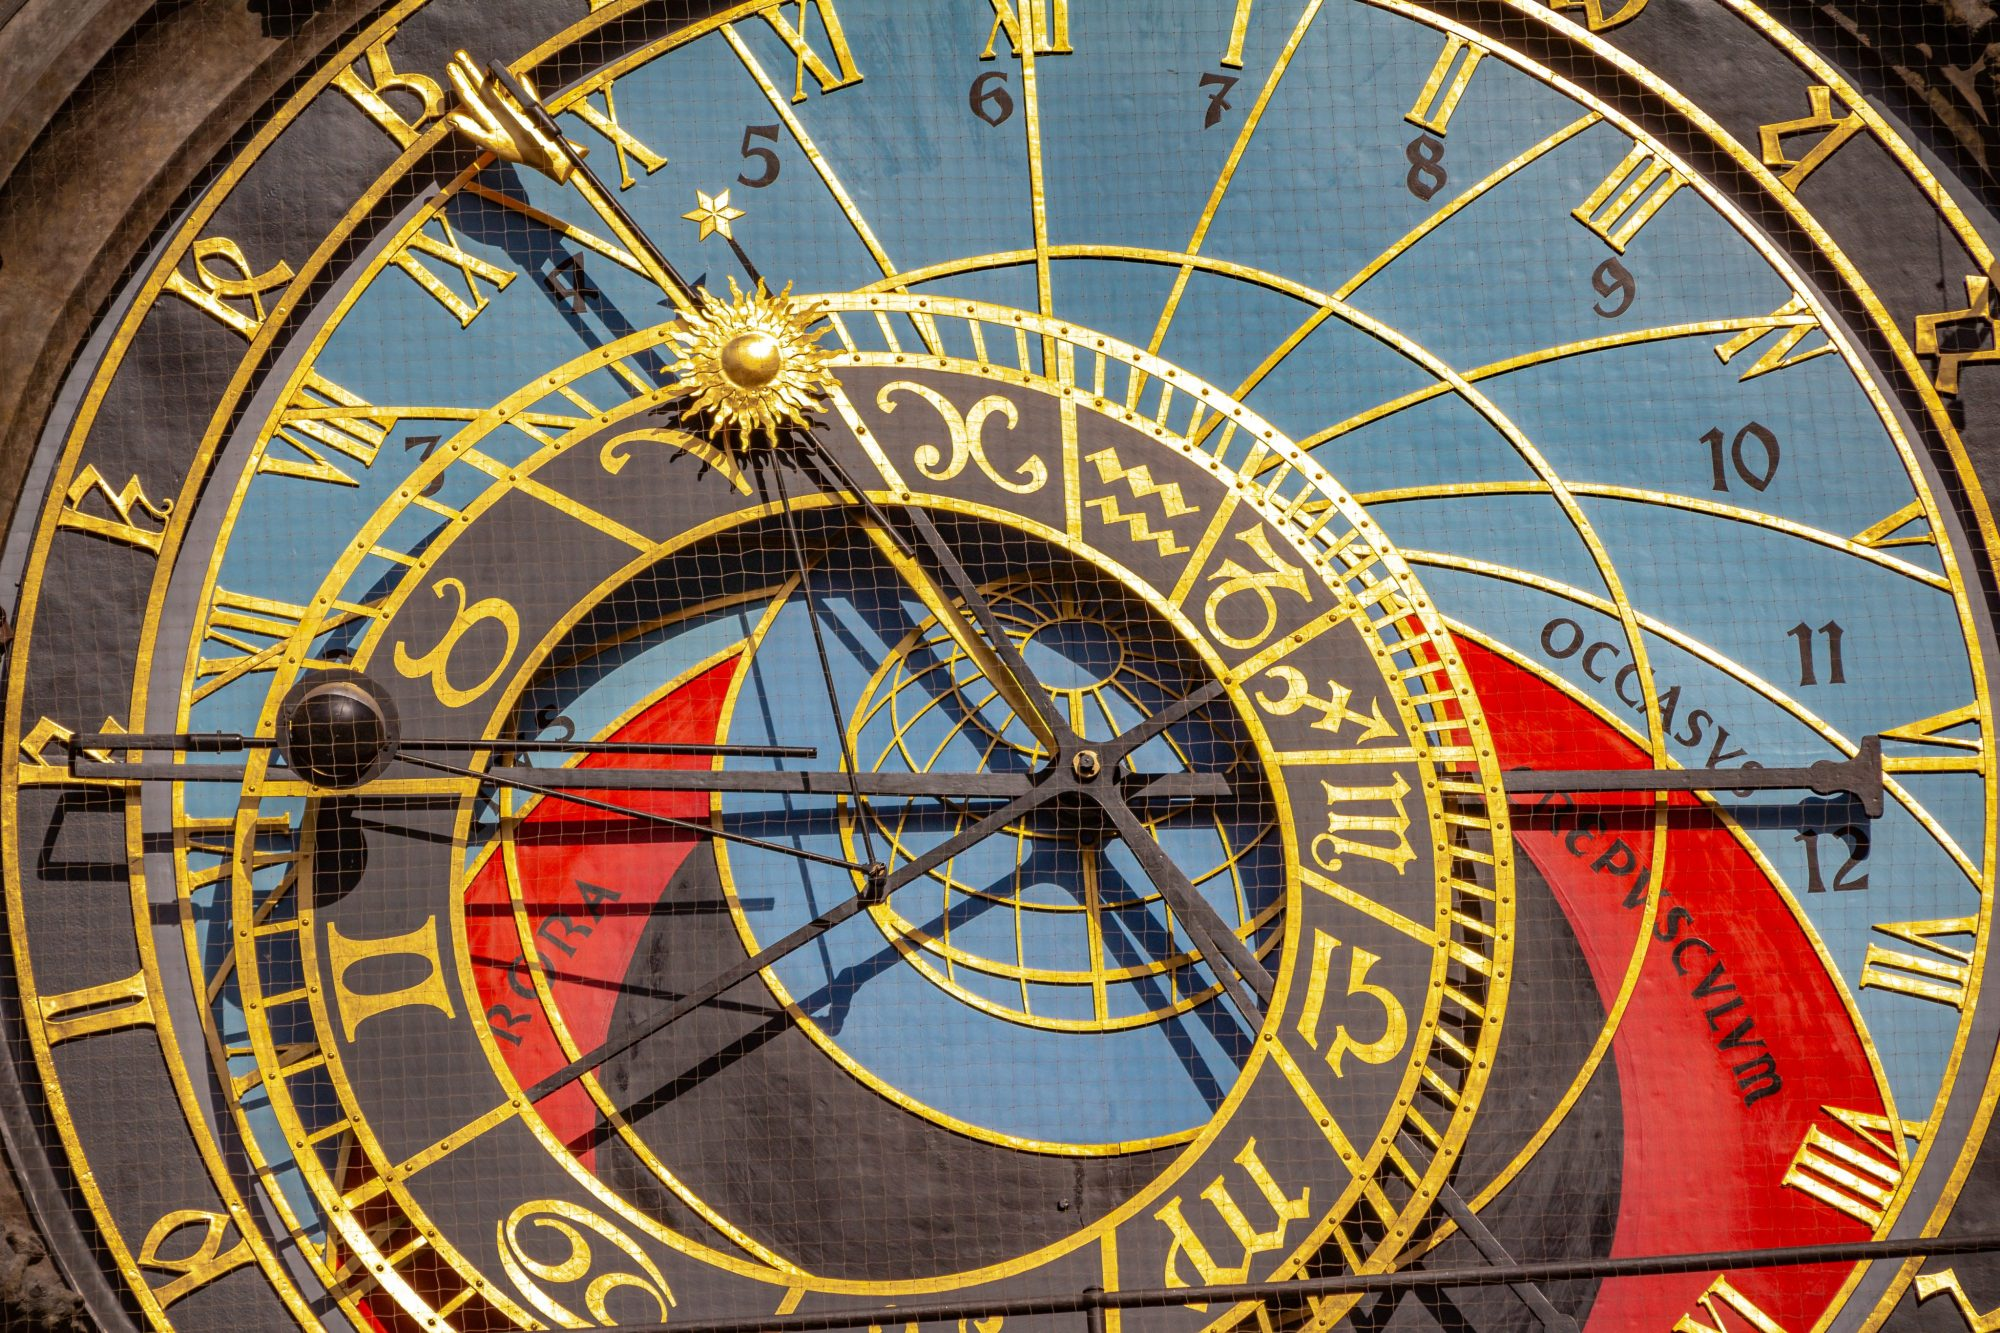 Detail of the zodiacal circle on Astronomical Clock